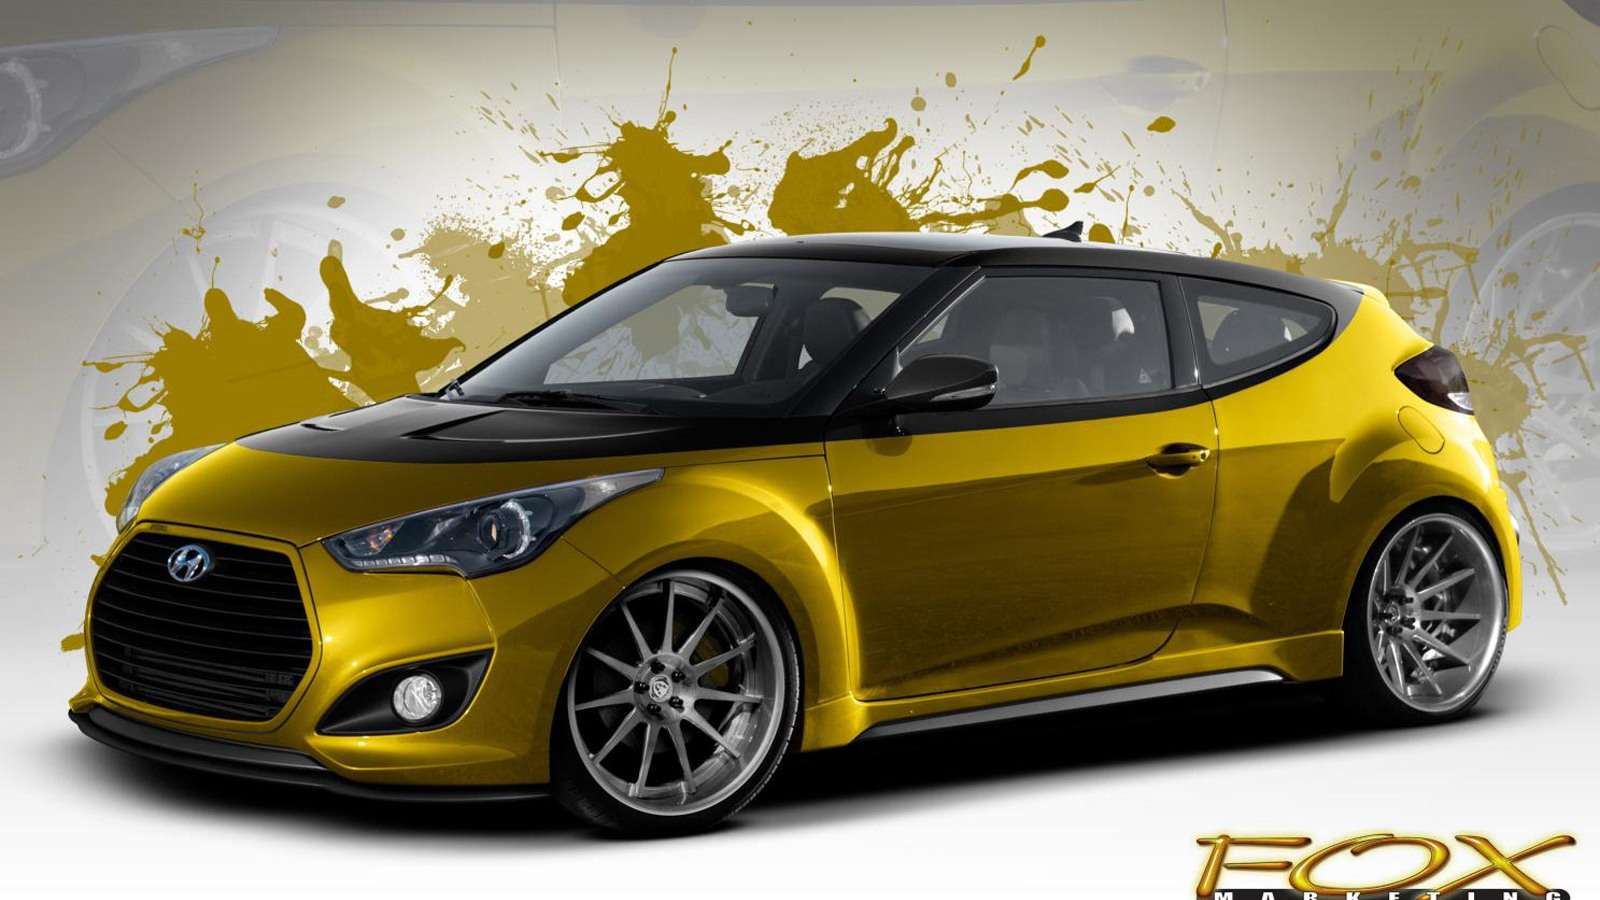 2013 Hyundai Veloster Turbo by Fox Marketing